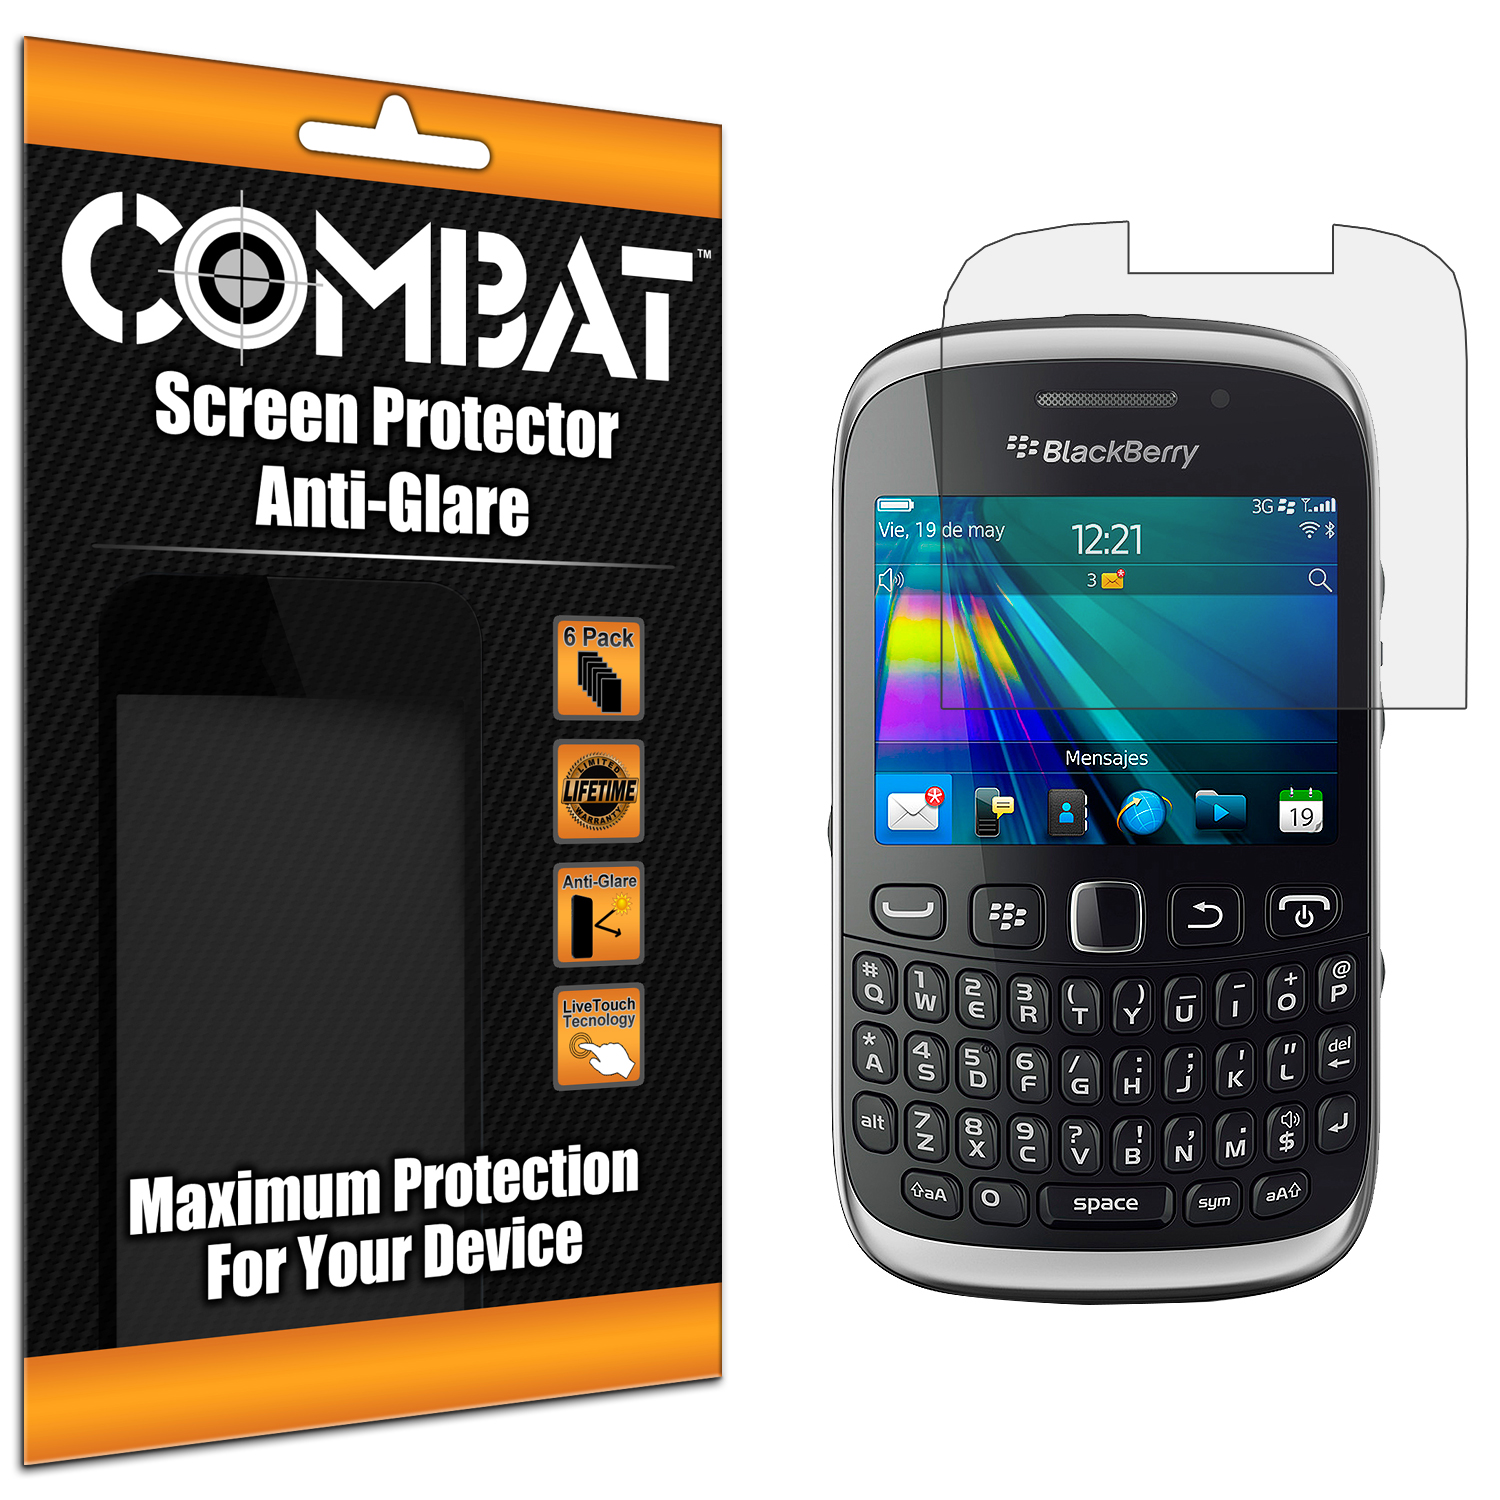 BlackBerry Curve 9315 / 9320 Combat 6 Pack Anti-Glare Matte Screen Protector